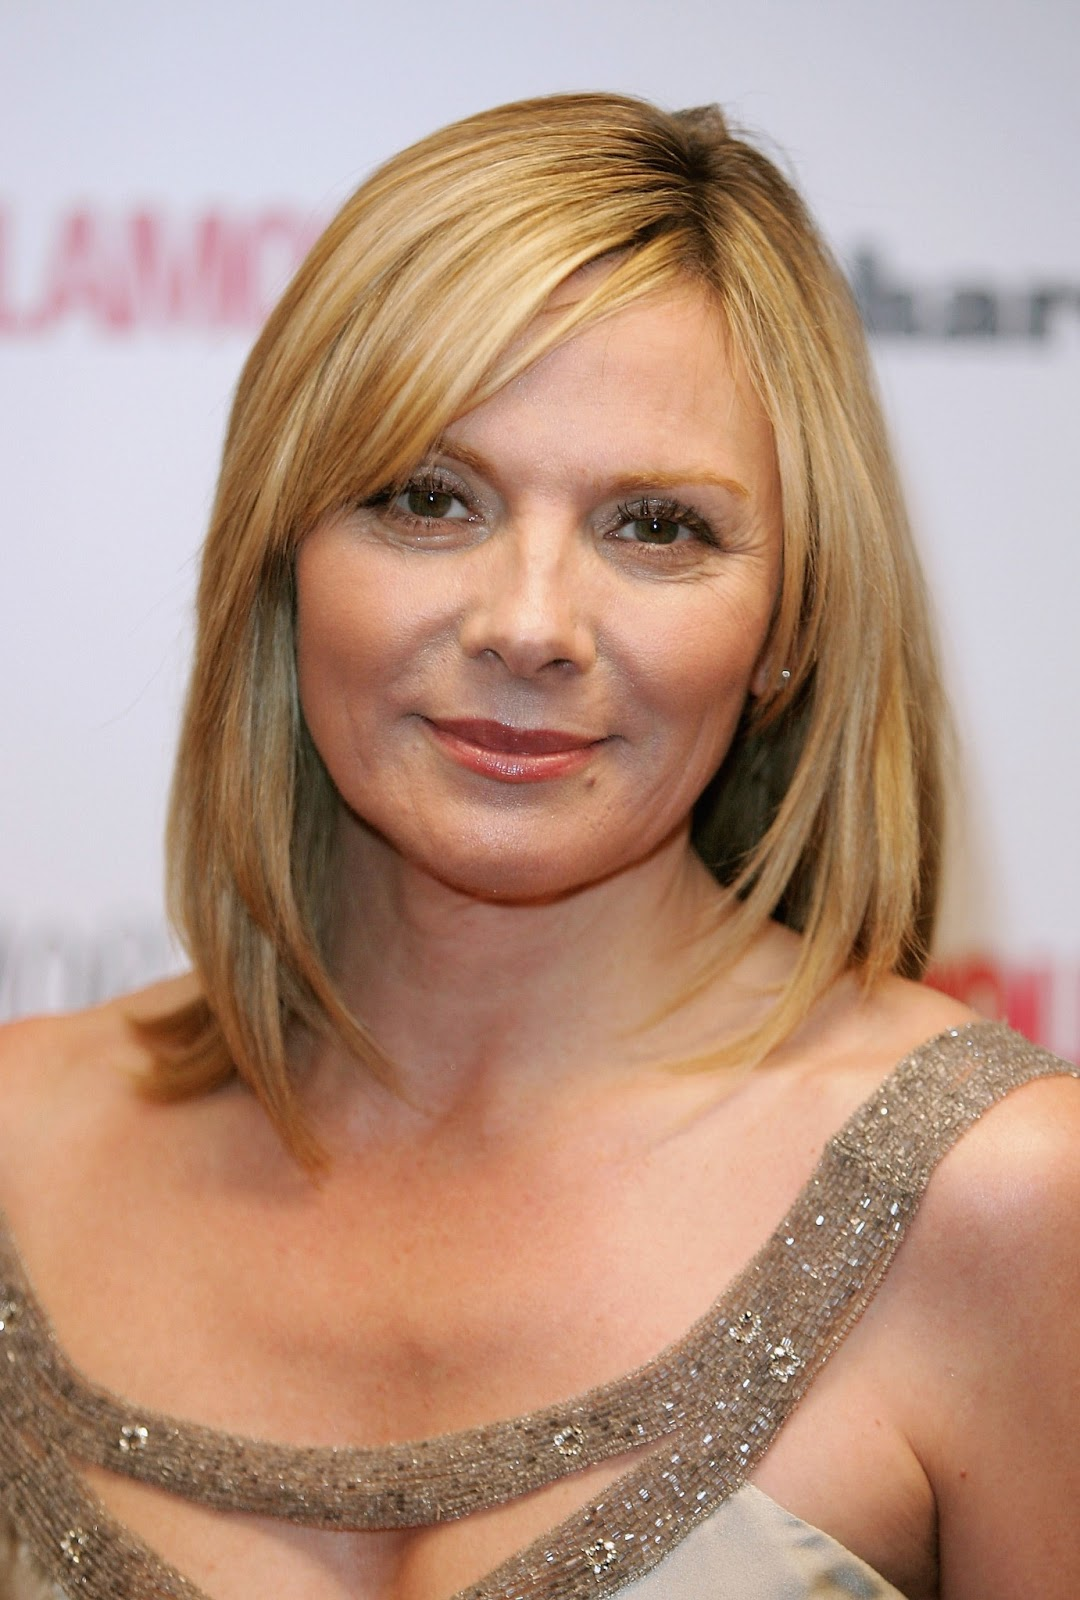 Kim Cattrall - Hollywood Actress Style Kim Cattrall